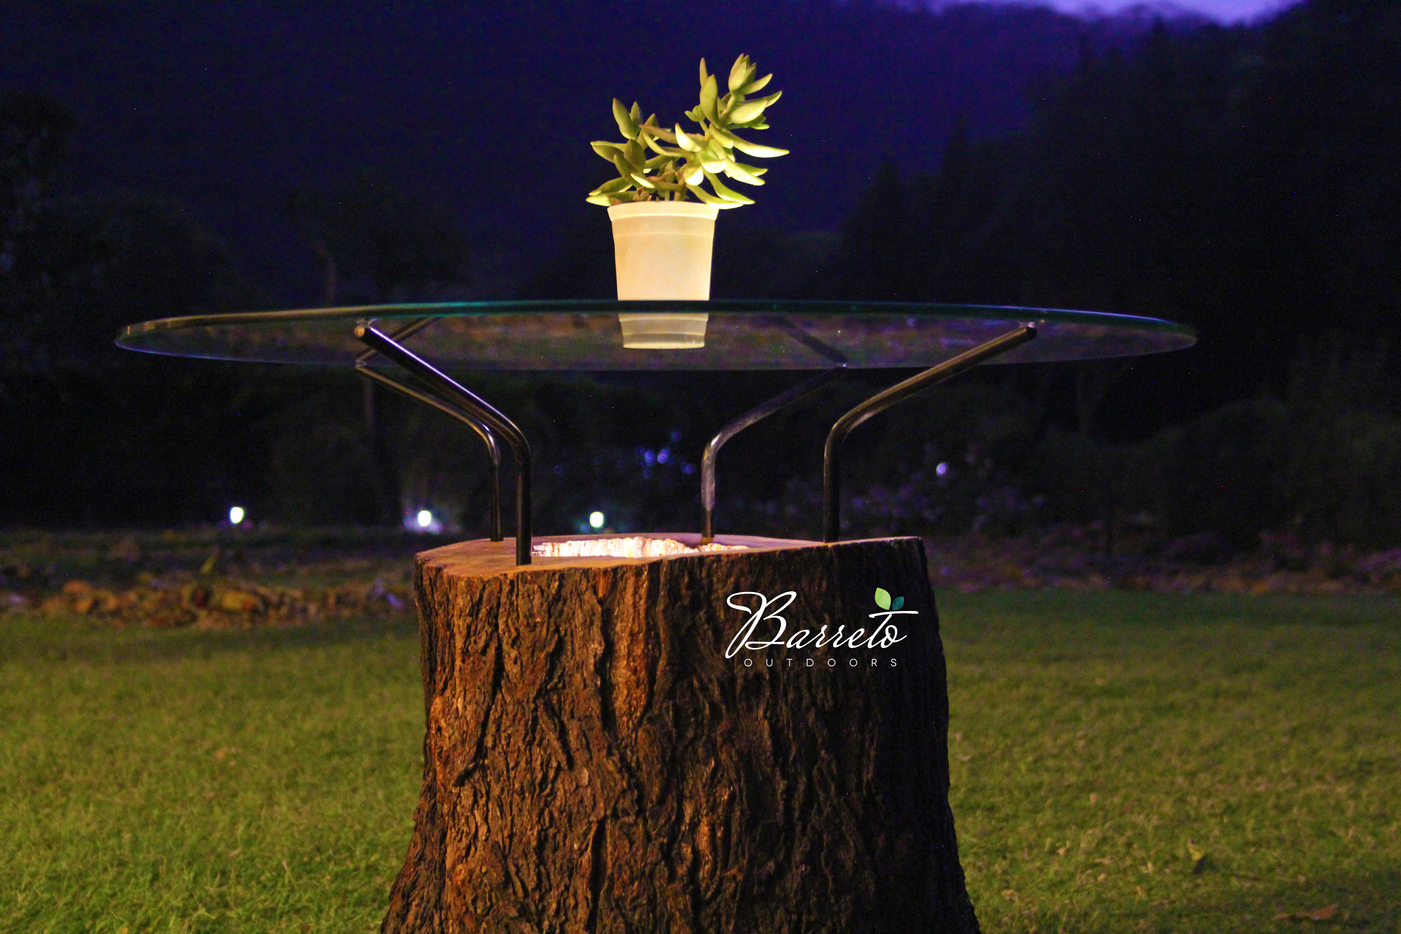 Wood Log Outdoor Table with lighting